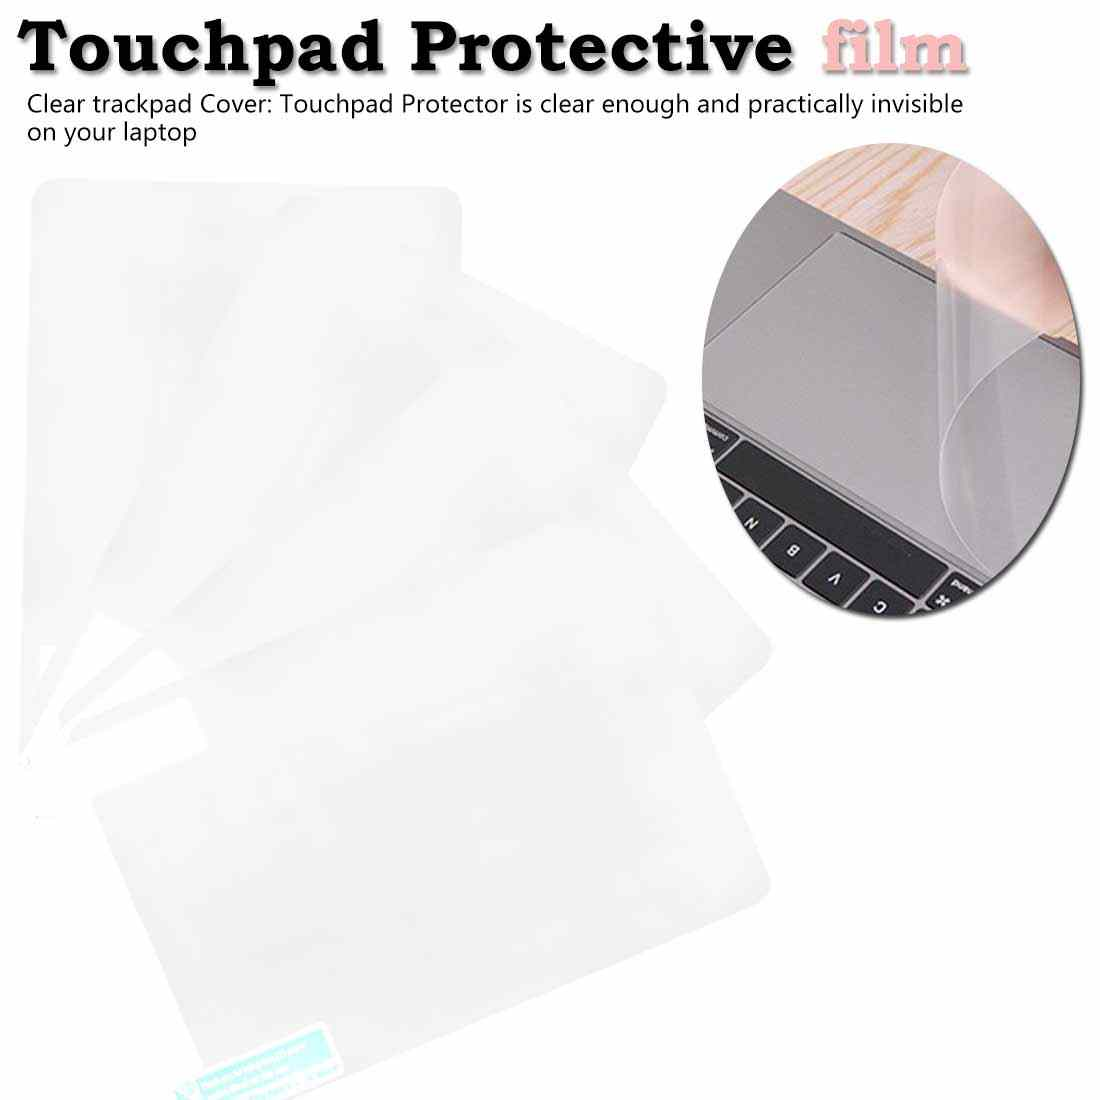 Protecteur d'autocollant de film protecteur de Touchpad transparent élevé pour Apple macbook air pro 11/13/15 tactile 12 film de protection de touchpad